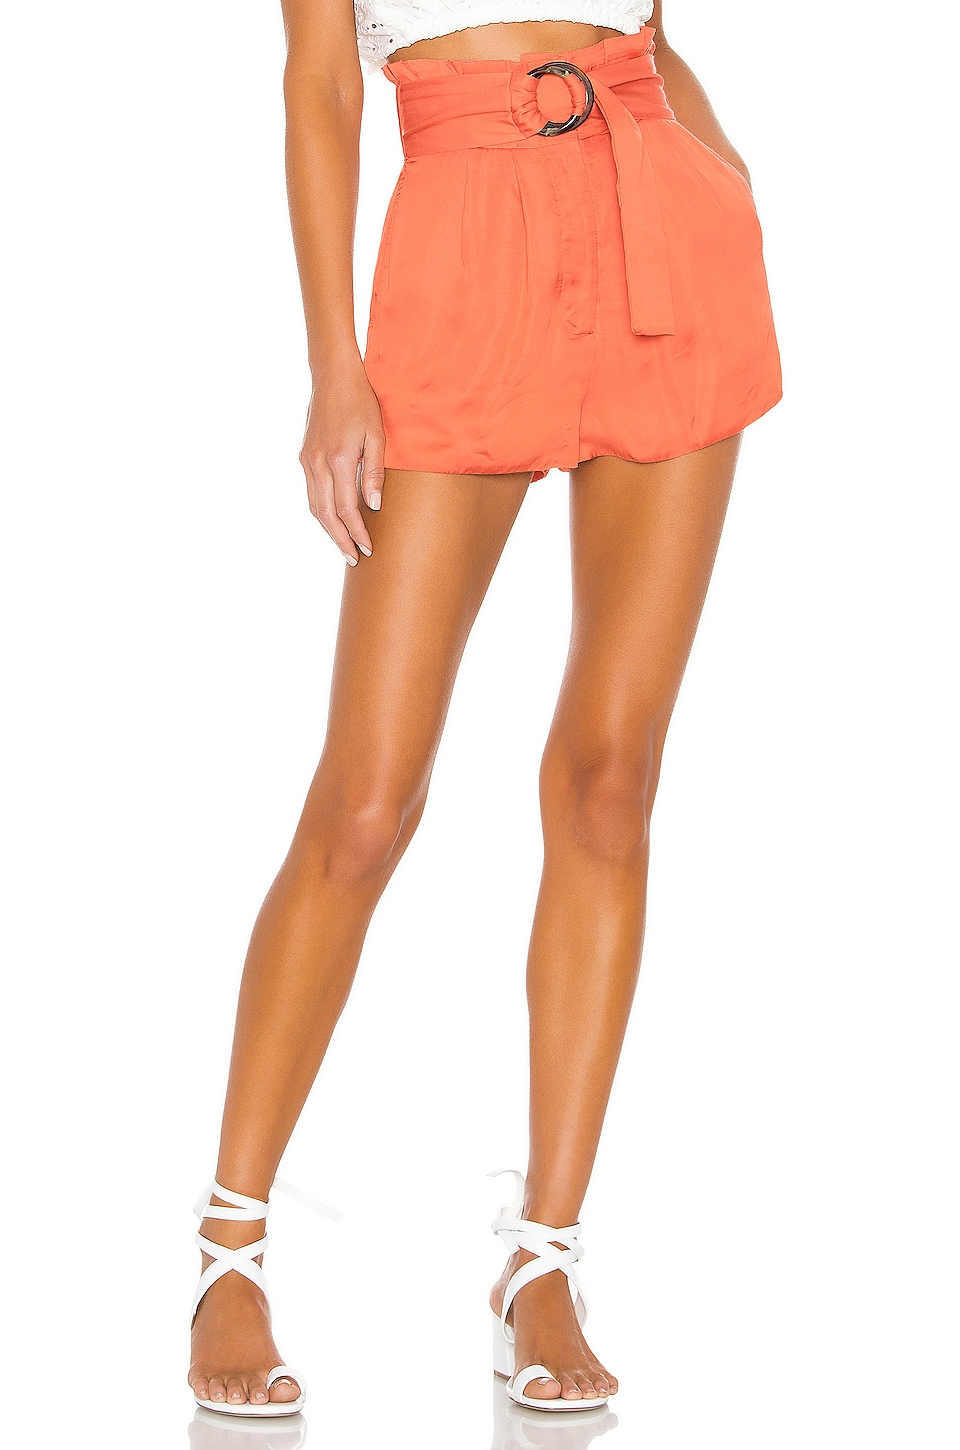 Tularosa Greyson Short in Salmon